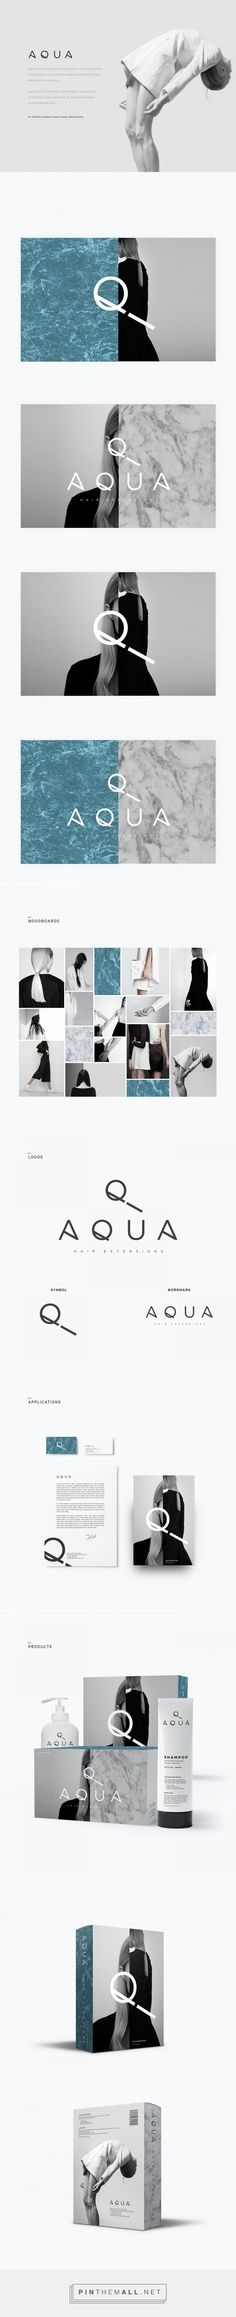 Aqua - Hair Extensions on Behance {cT} Neat variations